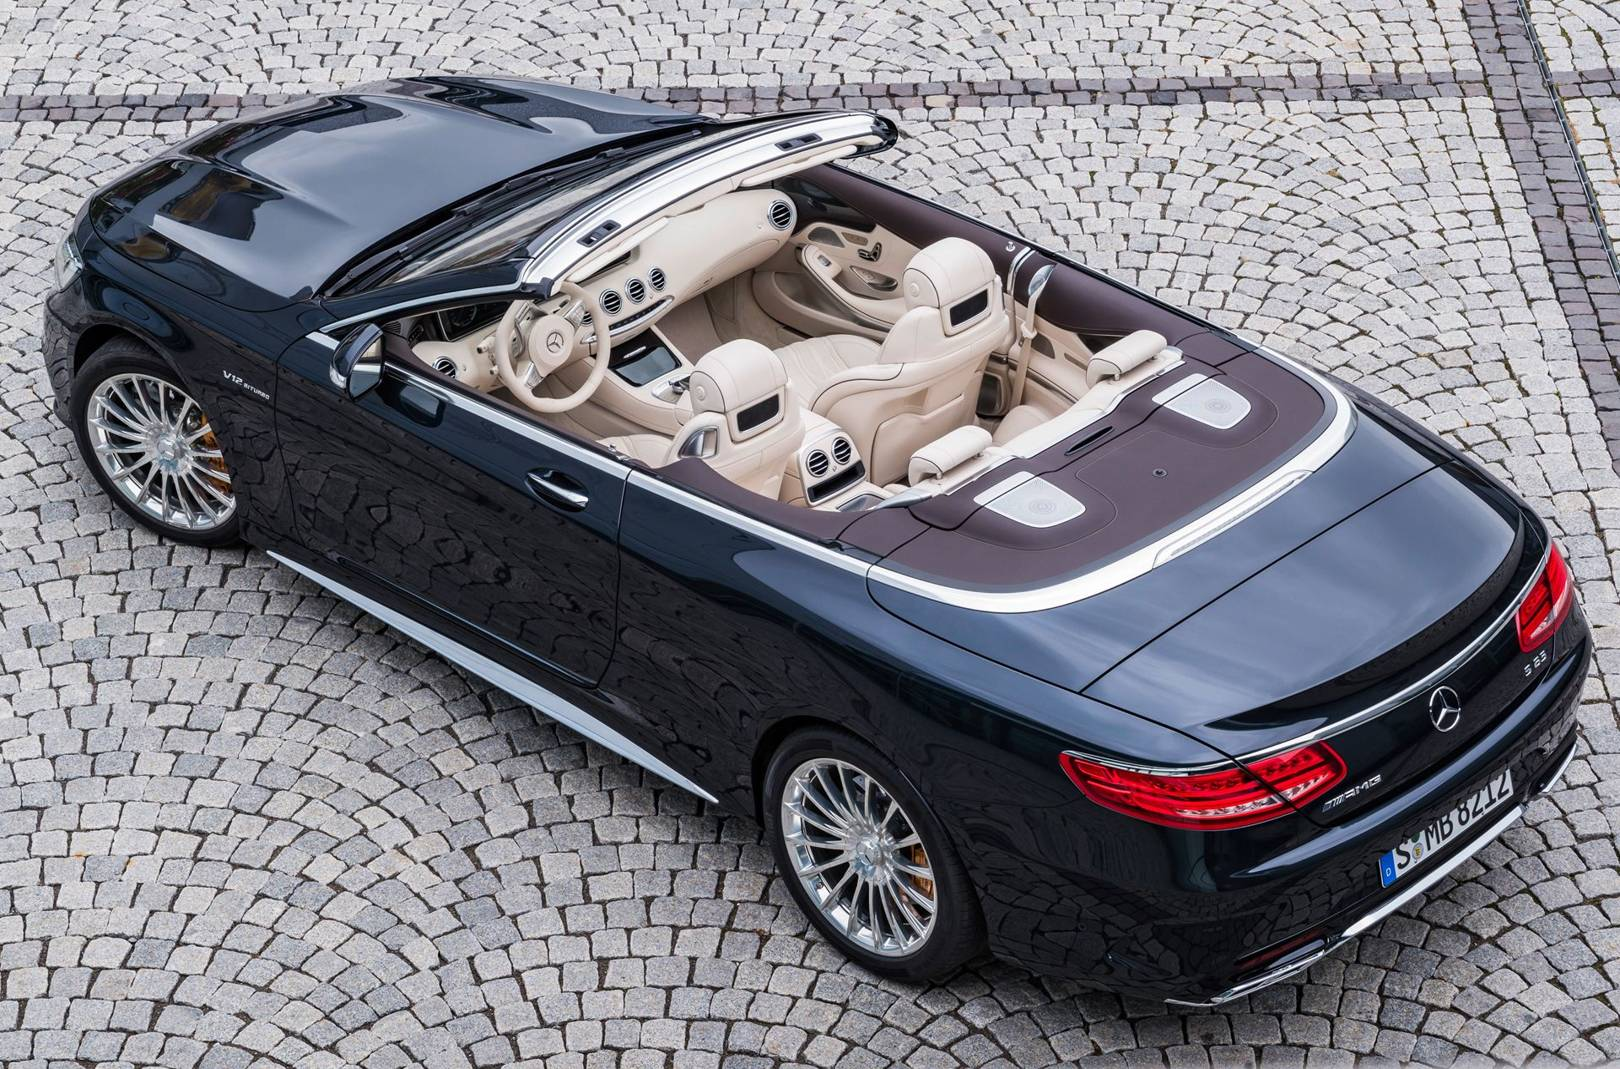 Mercedes S Cl Cabriolet Review Can It Make The Cool Again British Gq